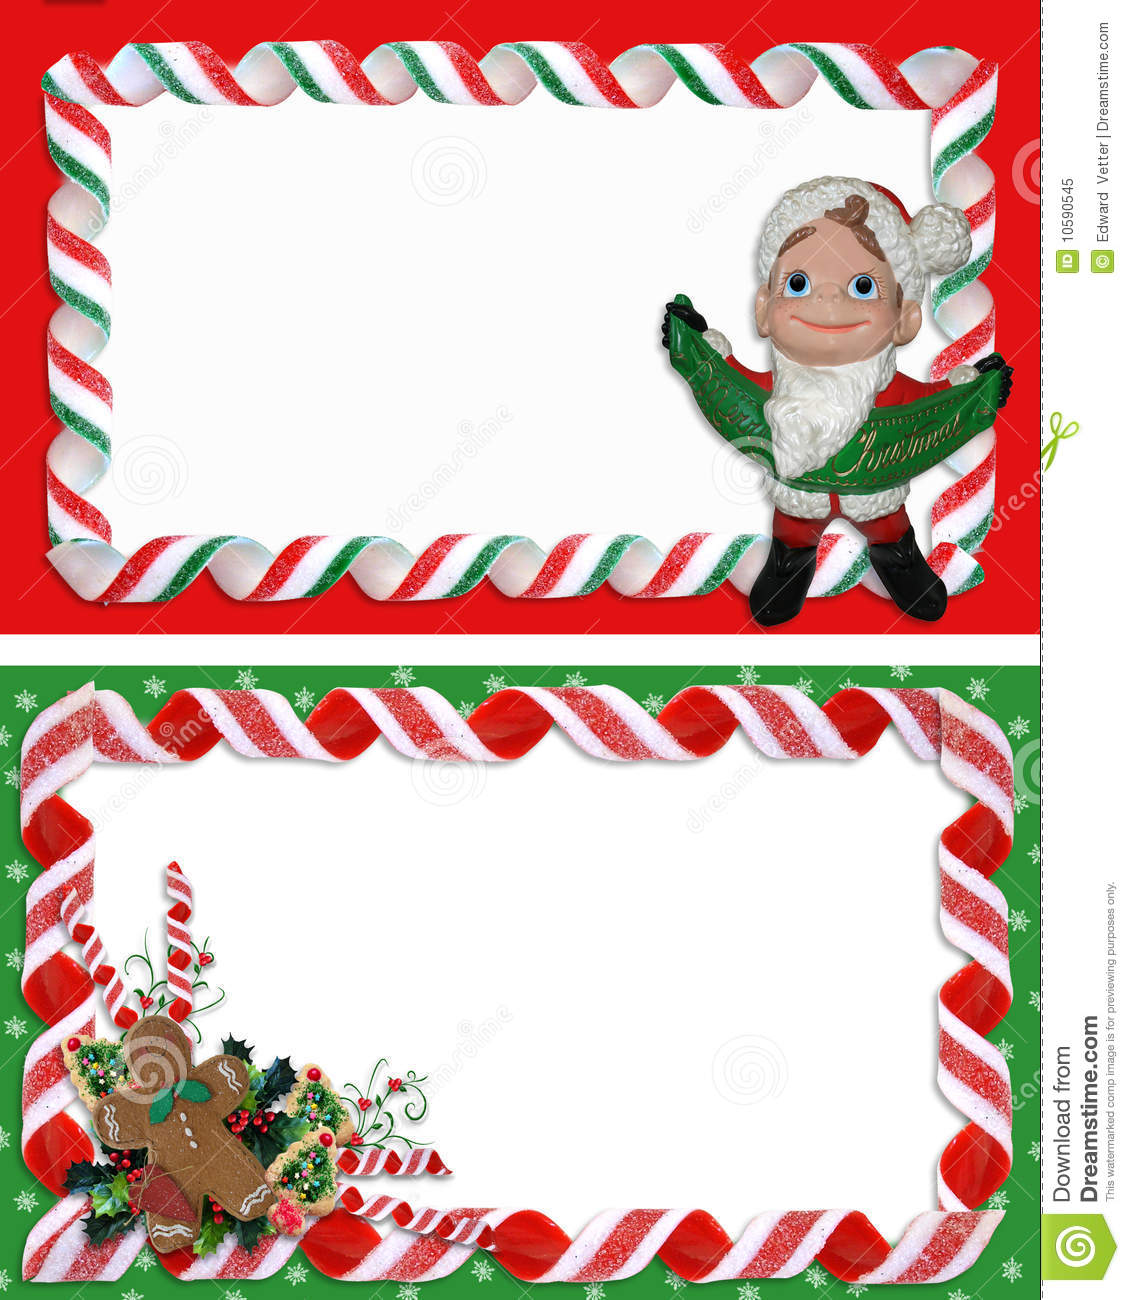 018 Template Ideas Christmas Address Labels Label Clipart.